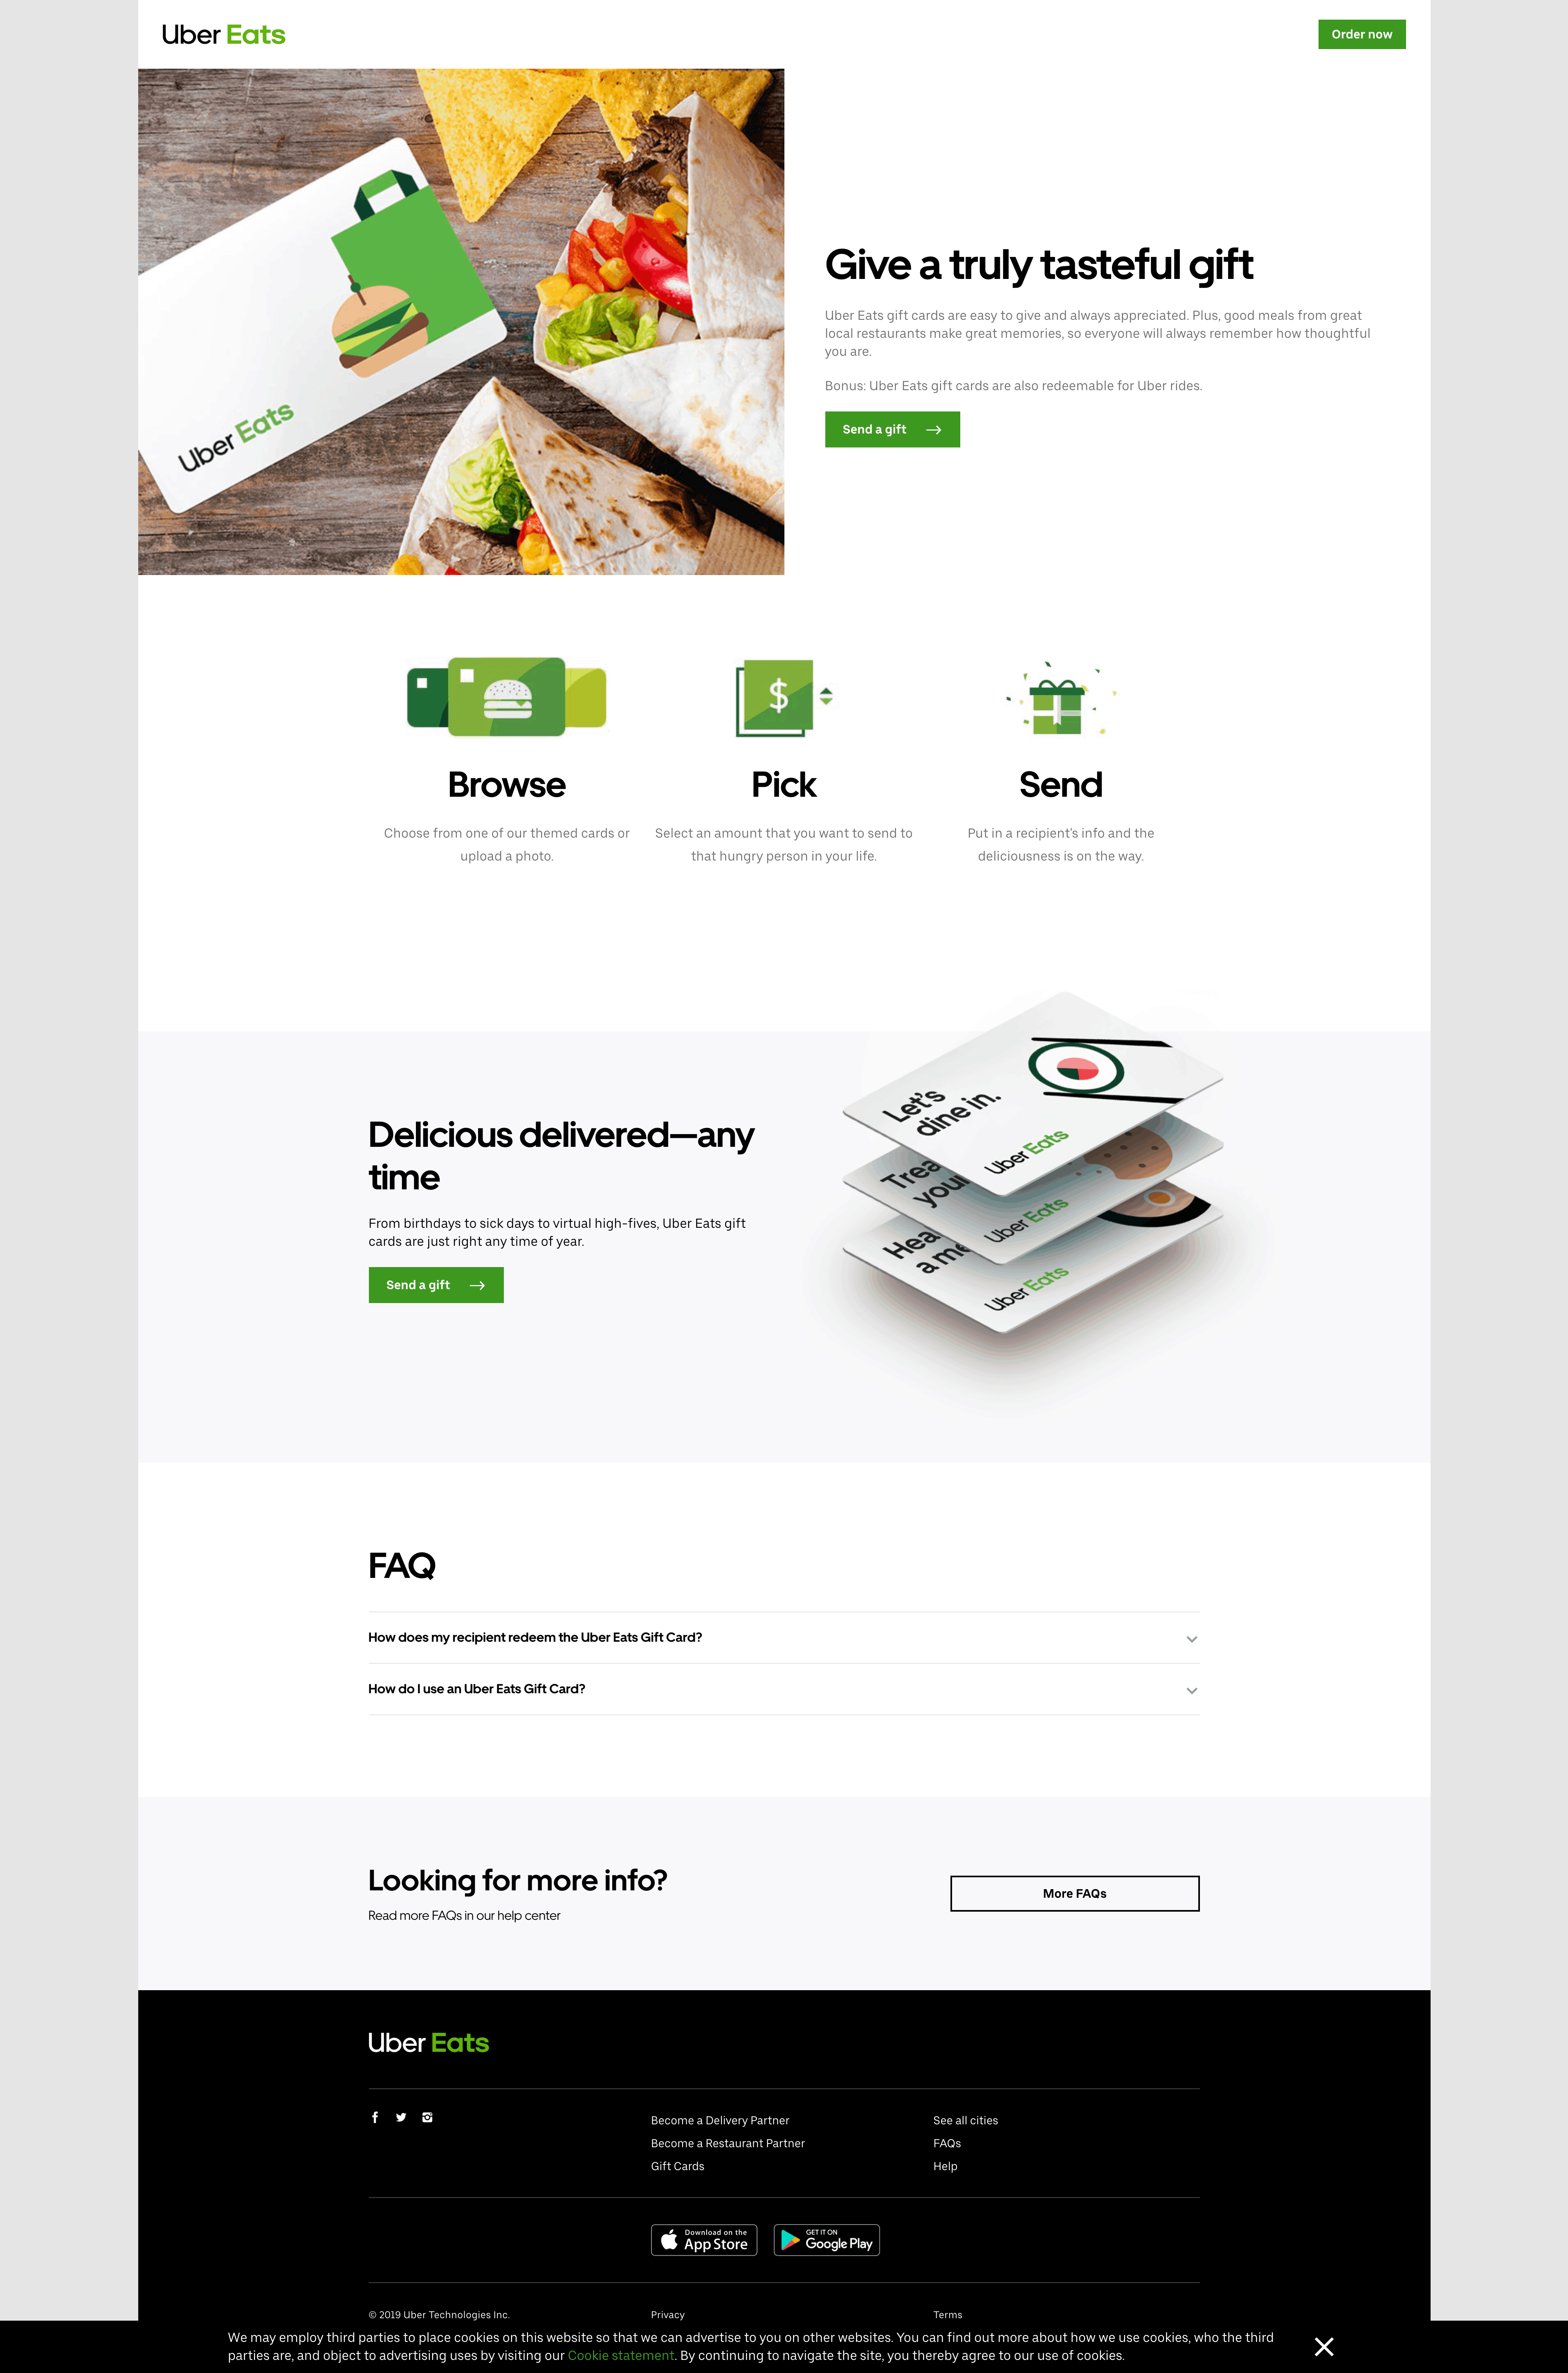 Gift Card by Uber Eats